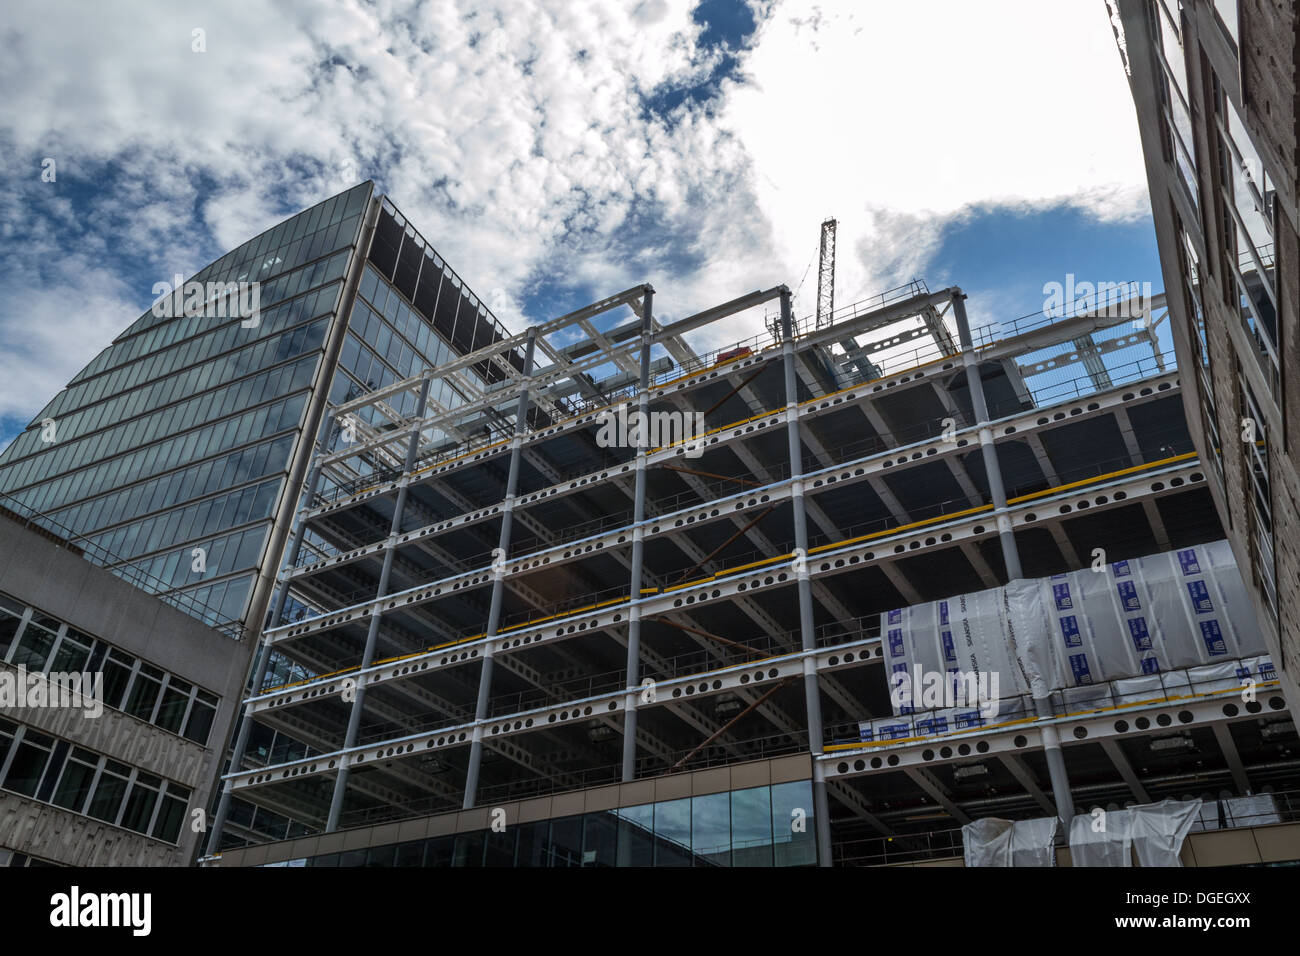 Moorgate Exchange during construction showing the structural steelwork - Stock Image